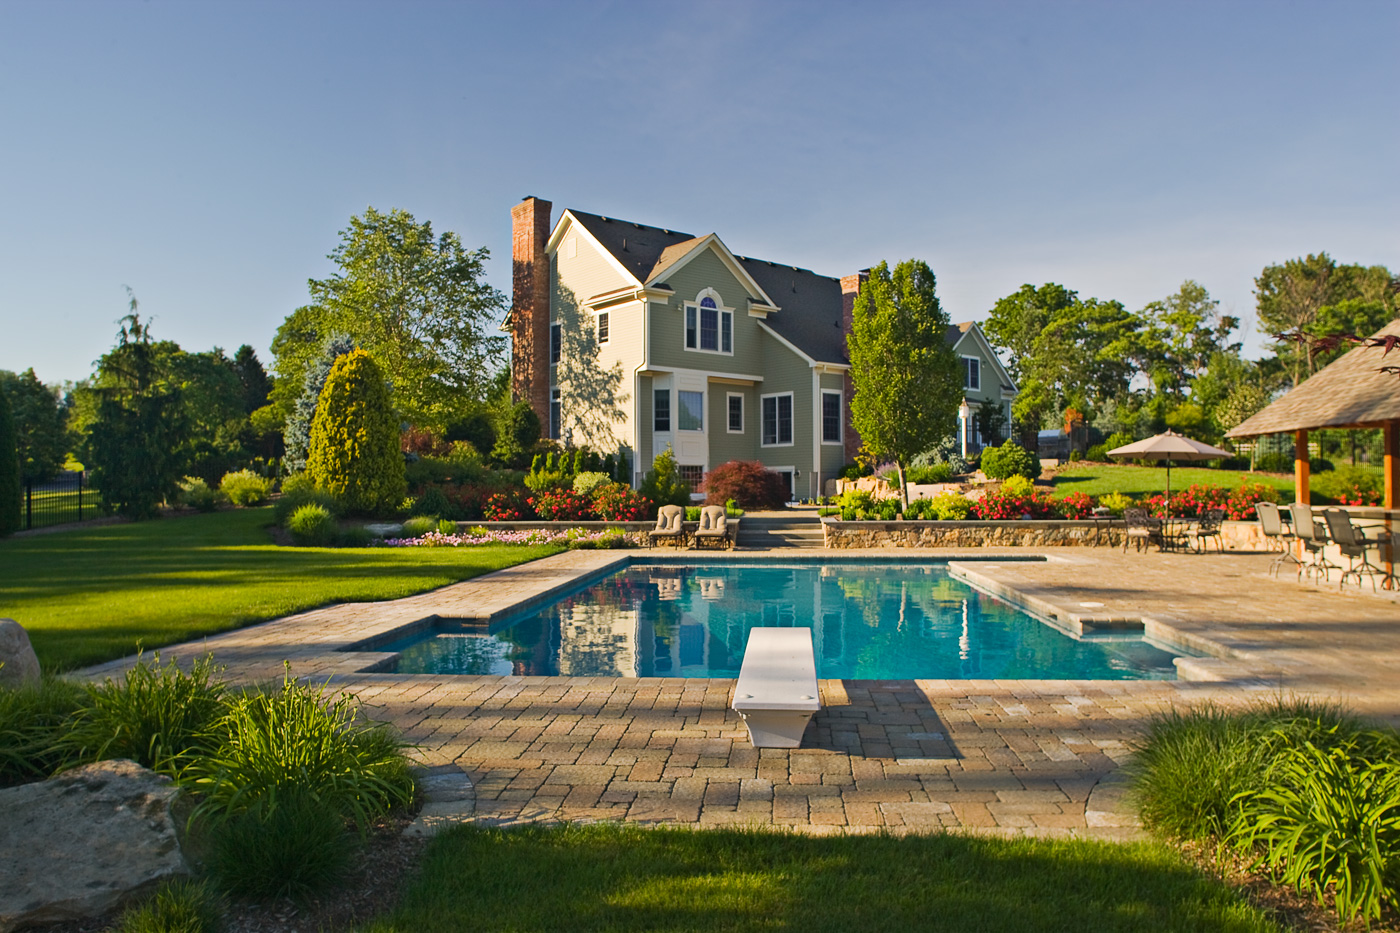 Formal Swimming Pool - NJ Landscaping